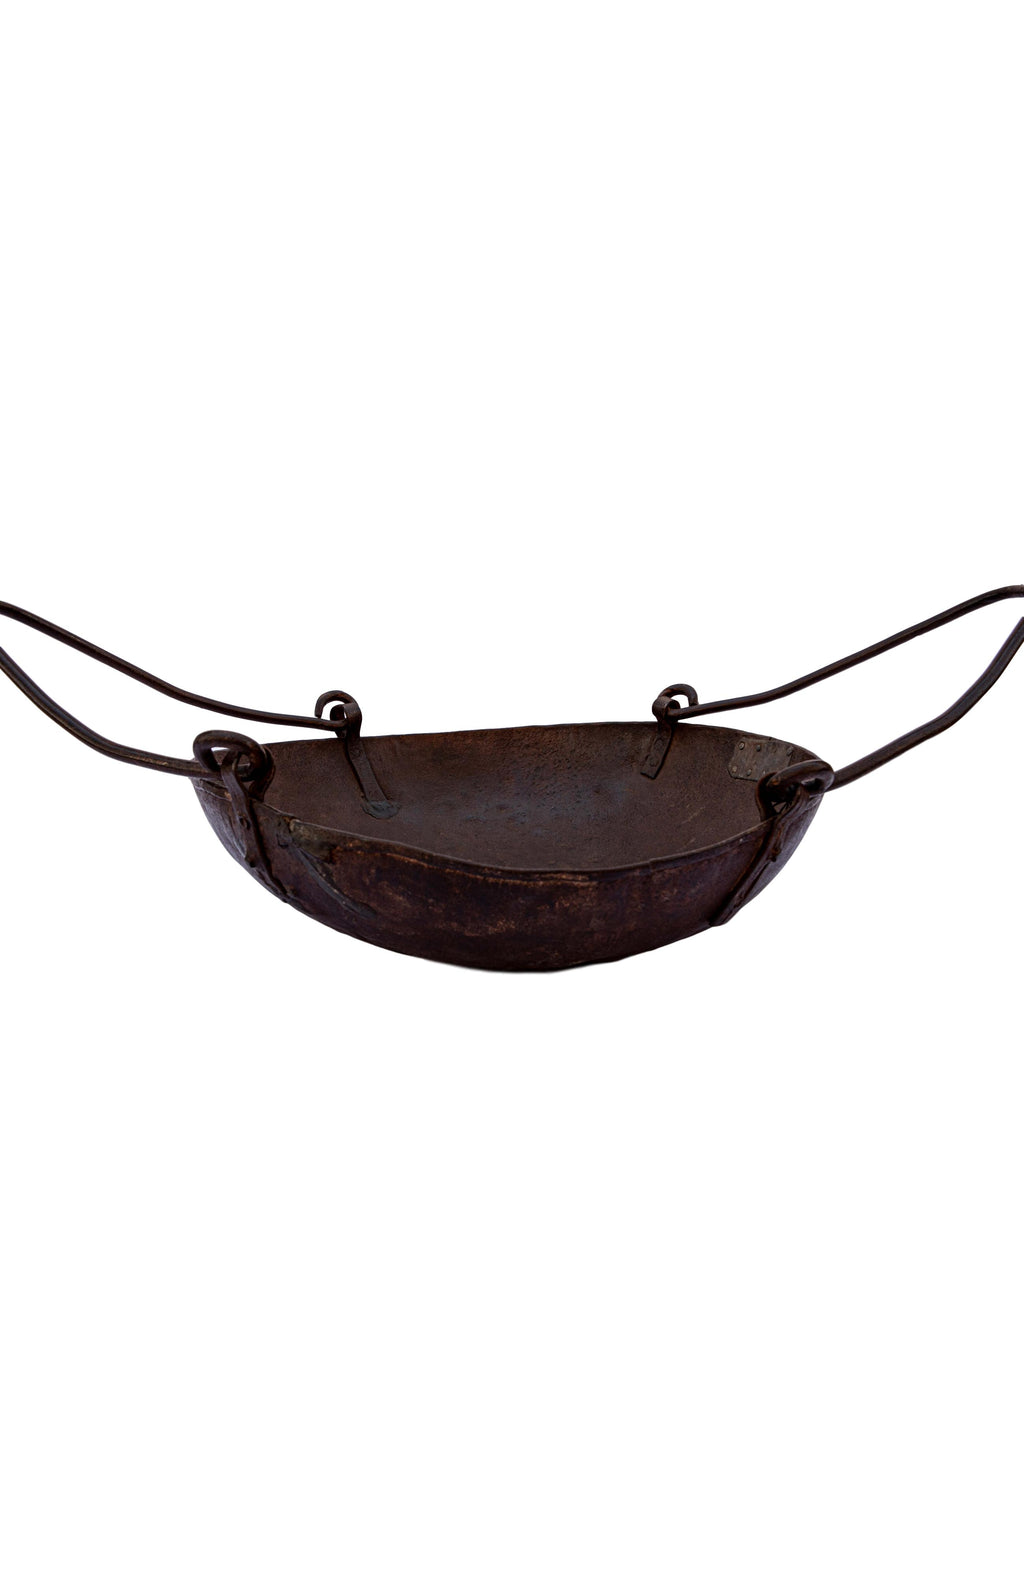 Hanging Cooking Pot